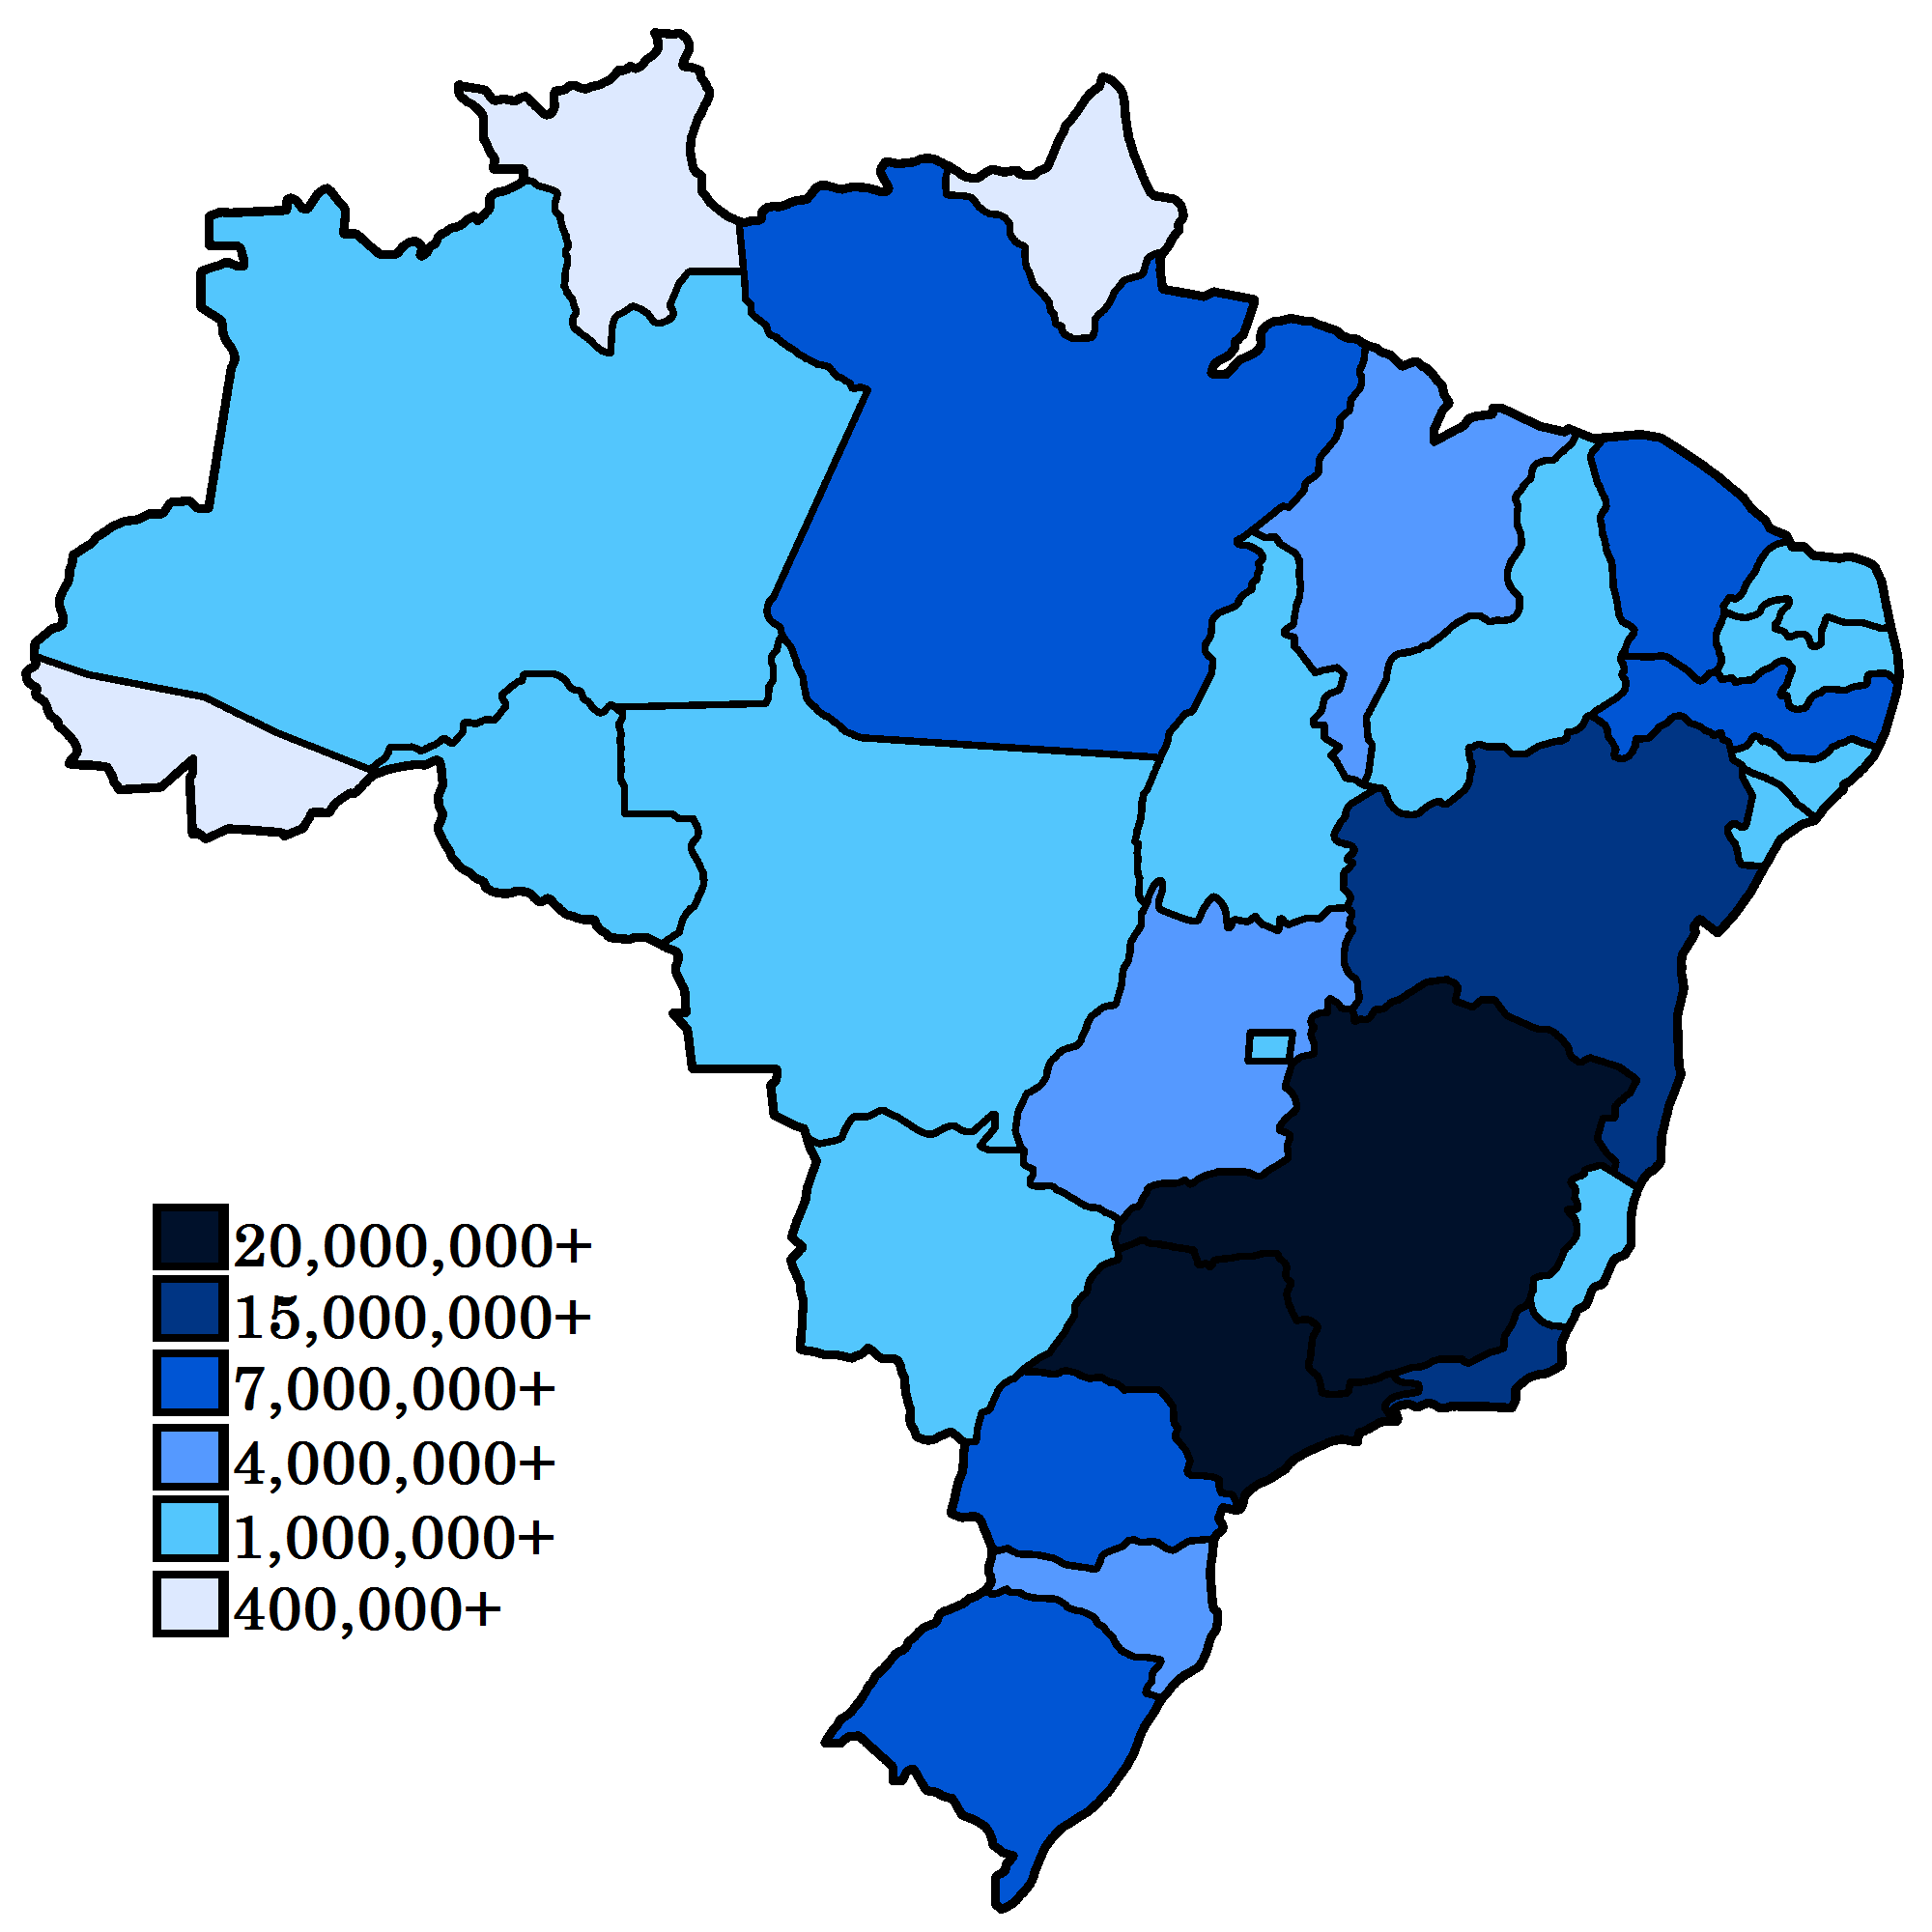 FileBrazilian States By Population 2013